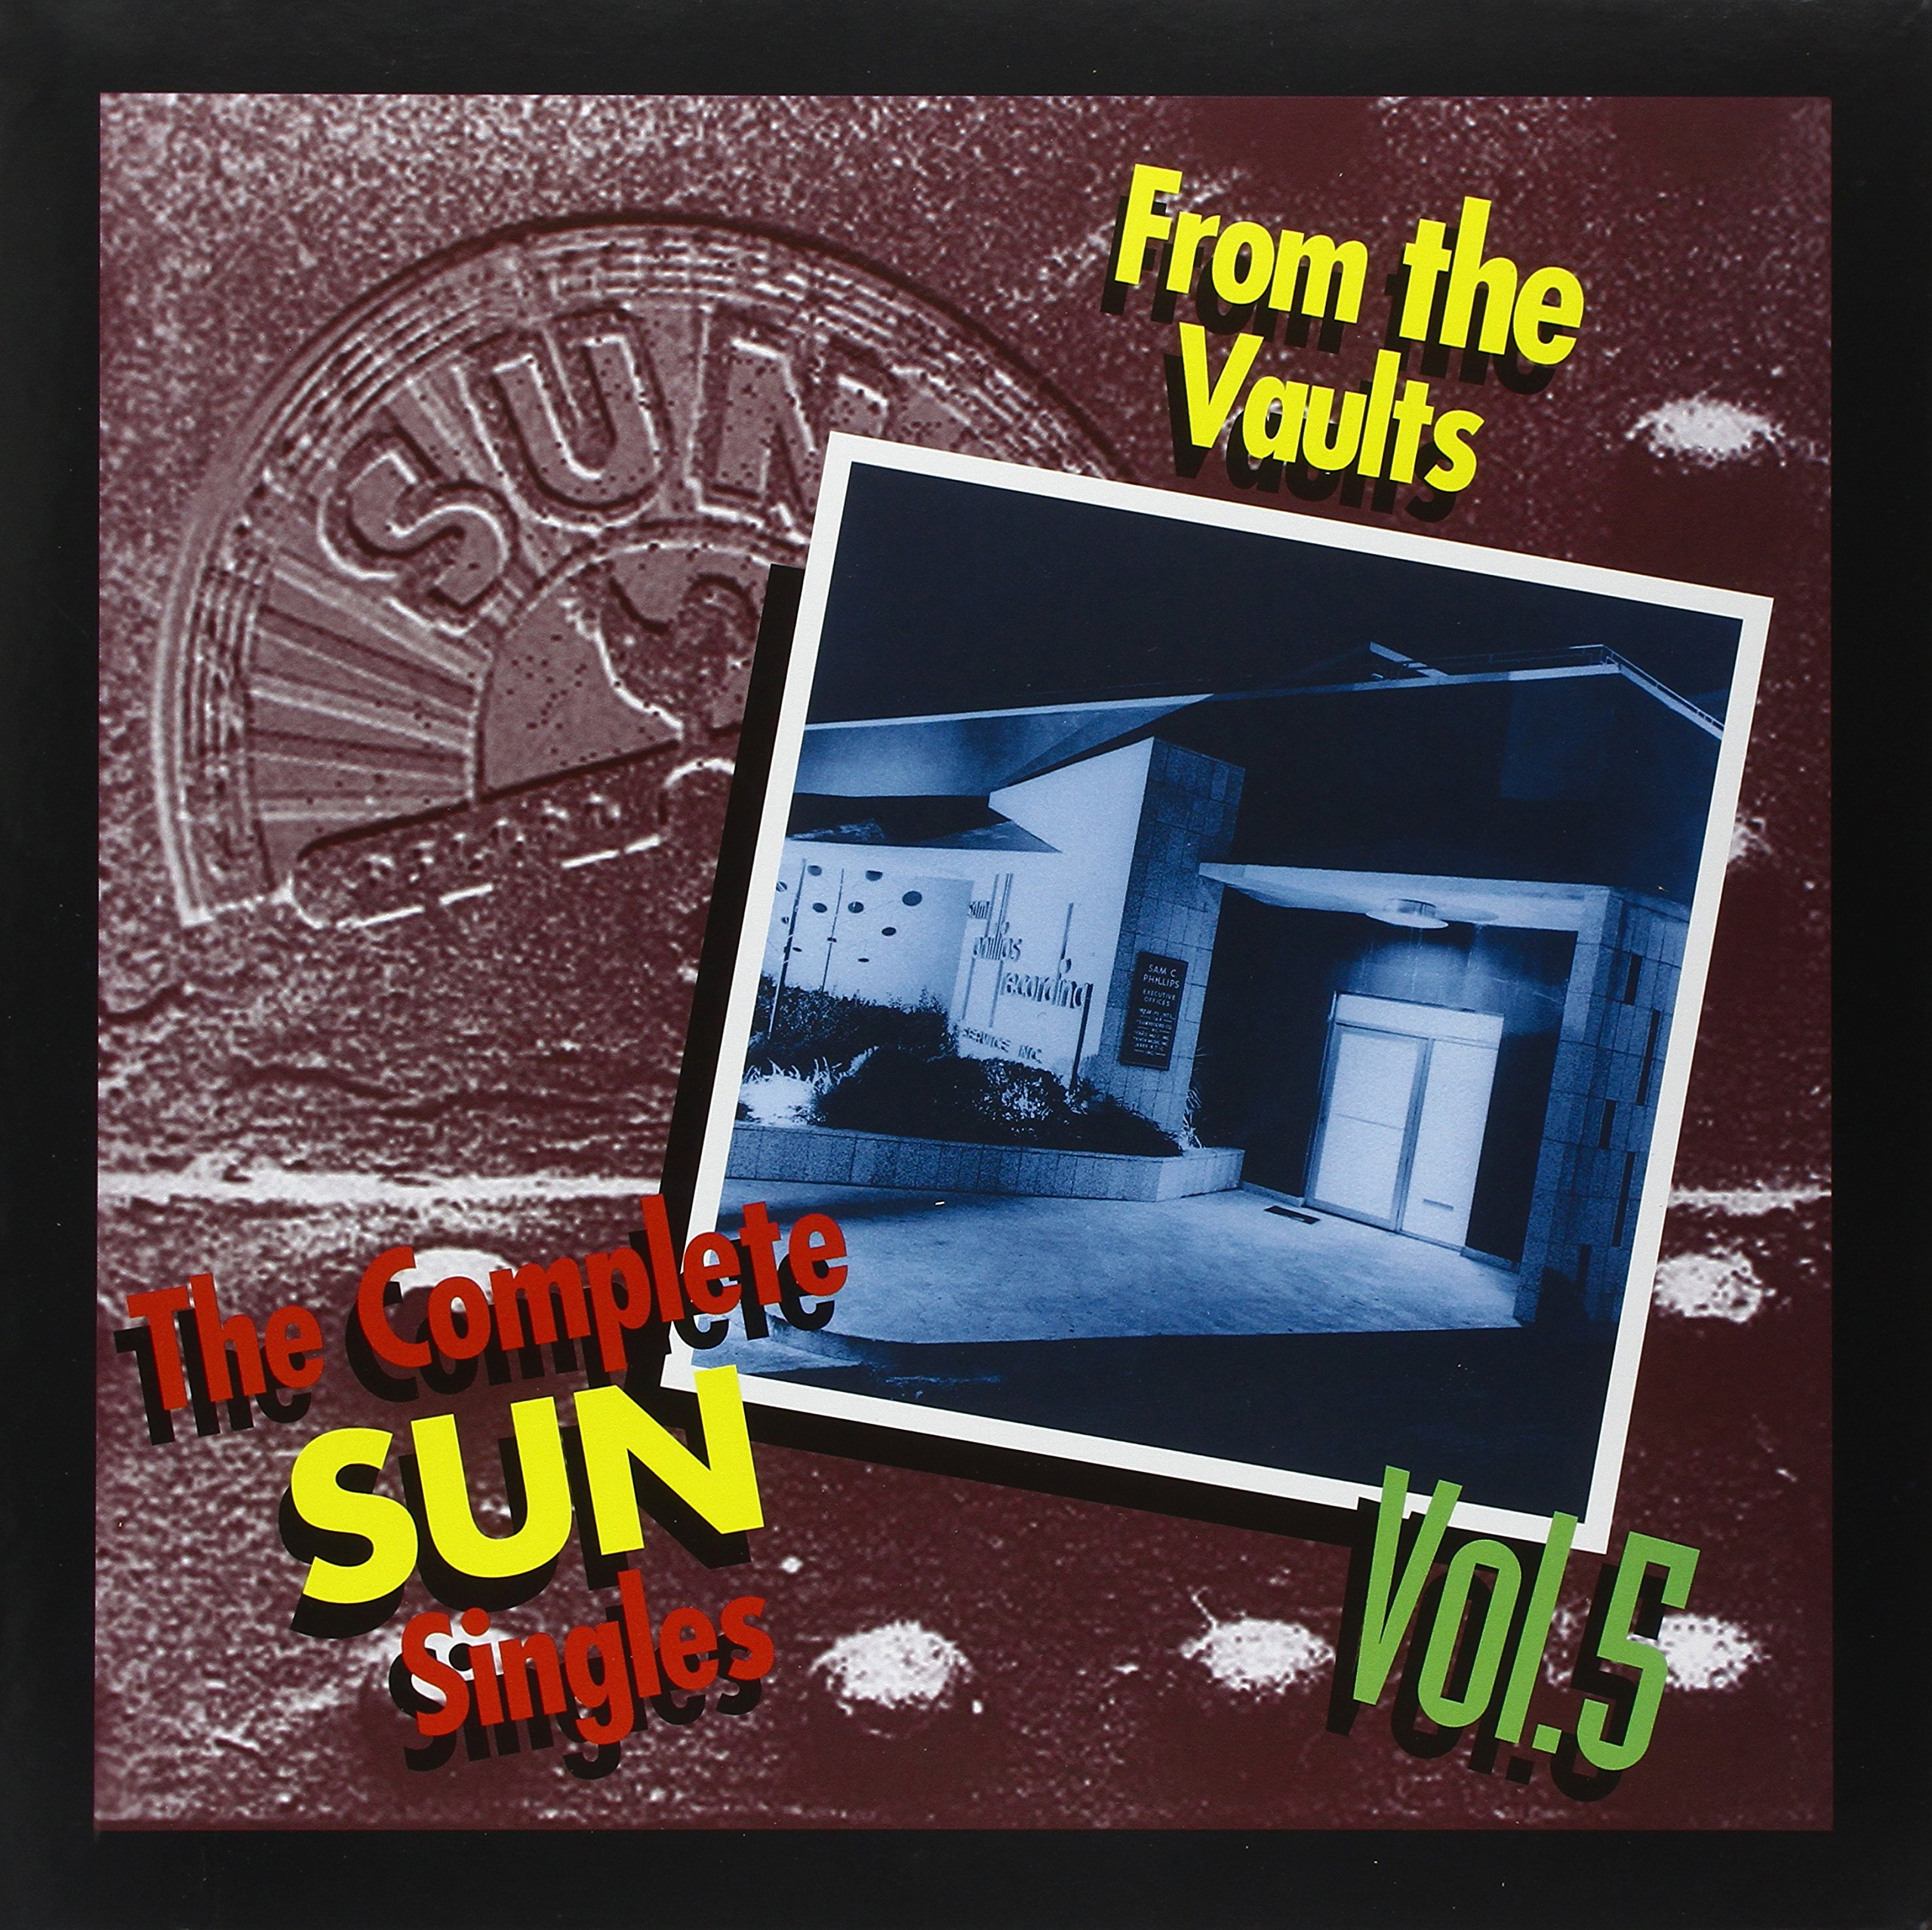 The Complete Sun Singles, Vol. 5 - From the Vaults by Bear Family